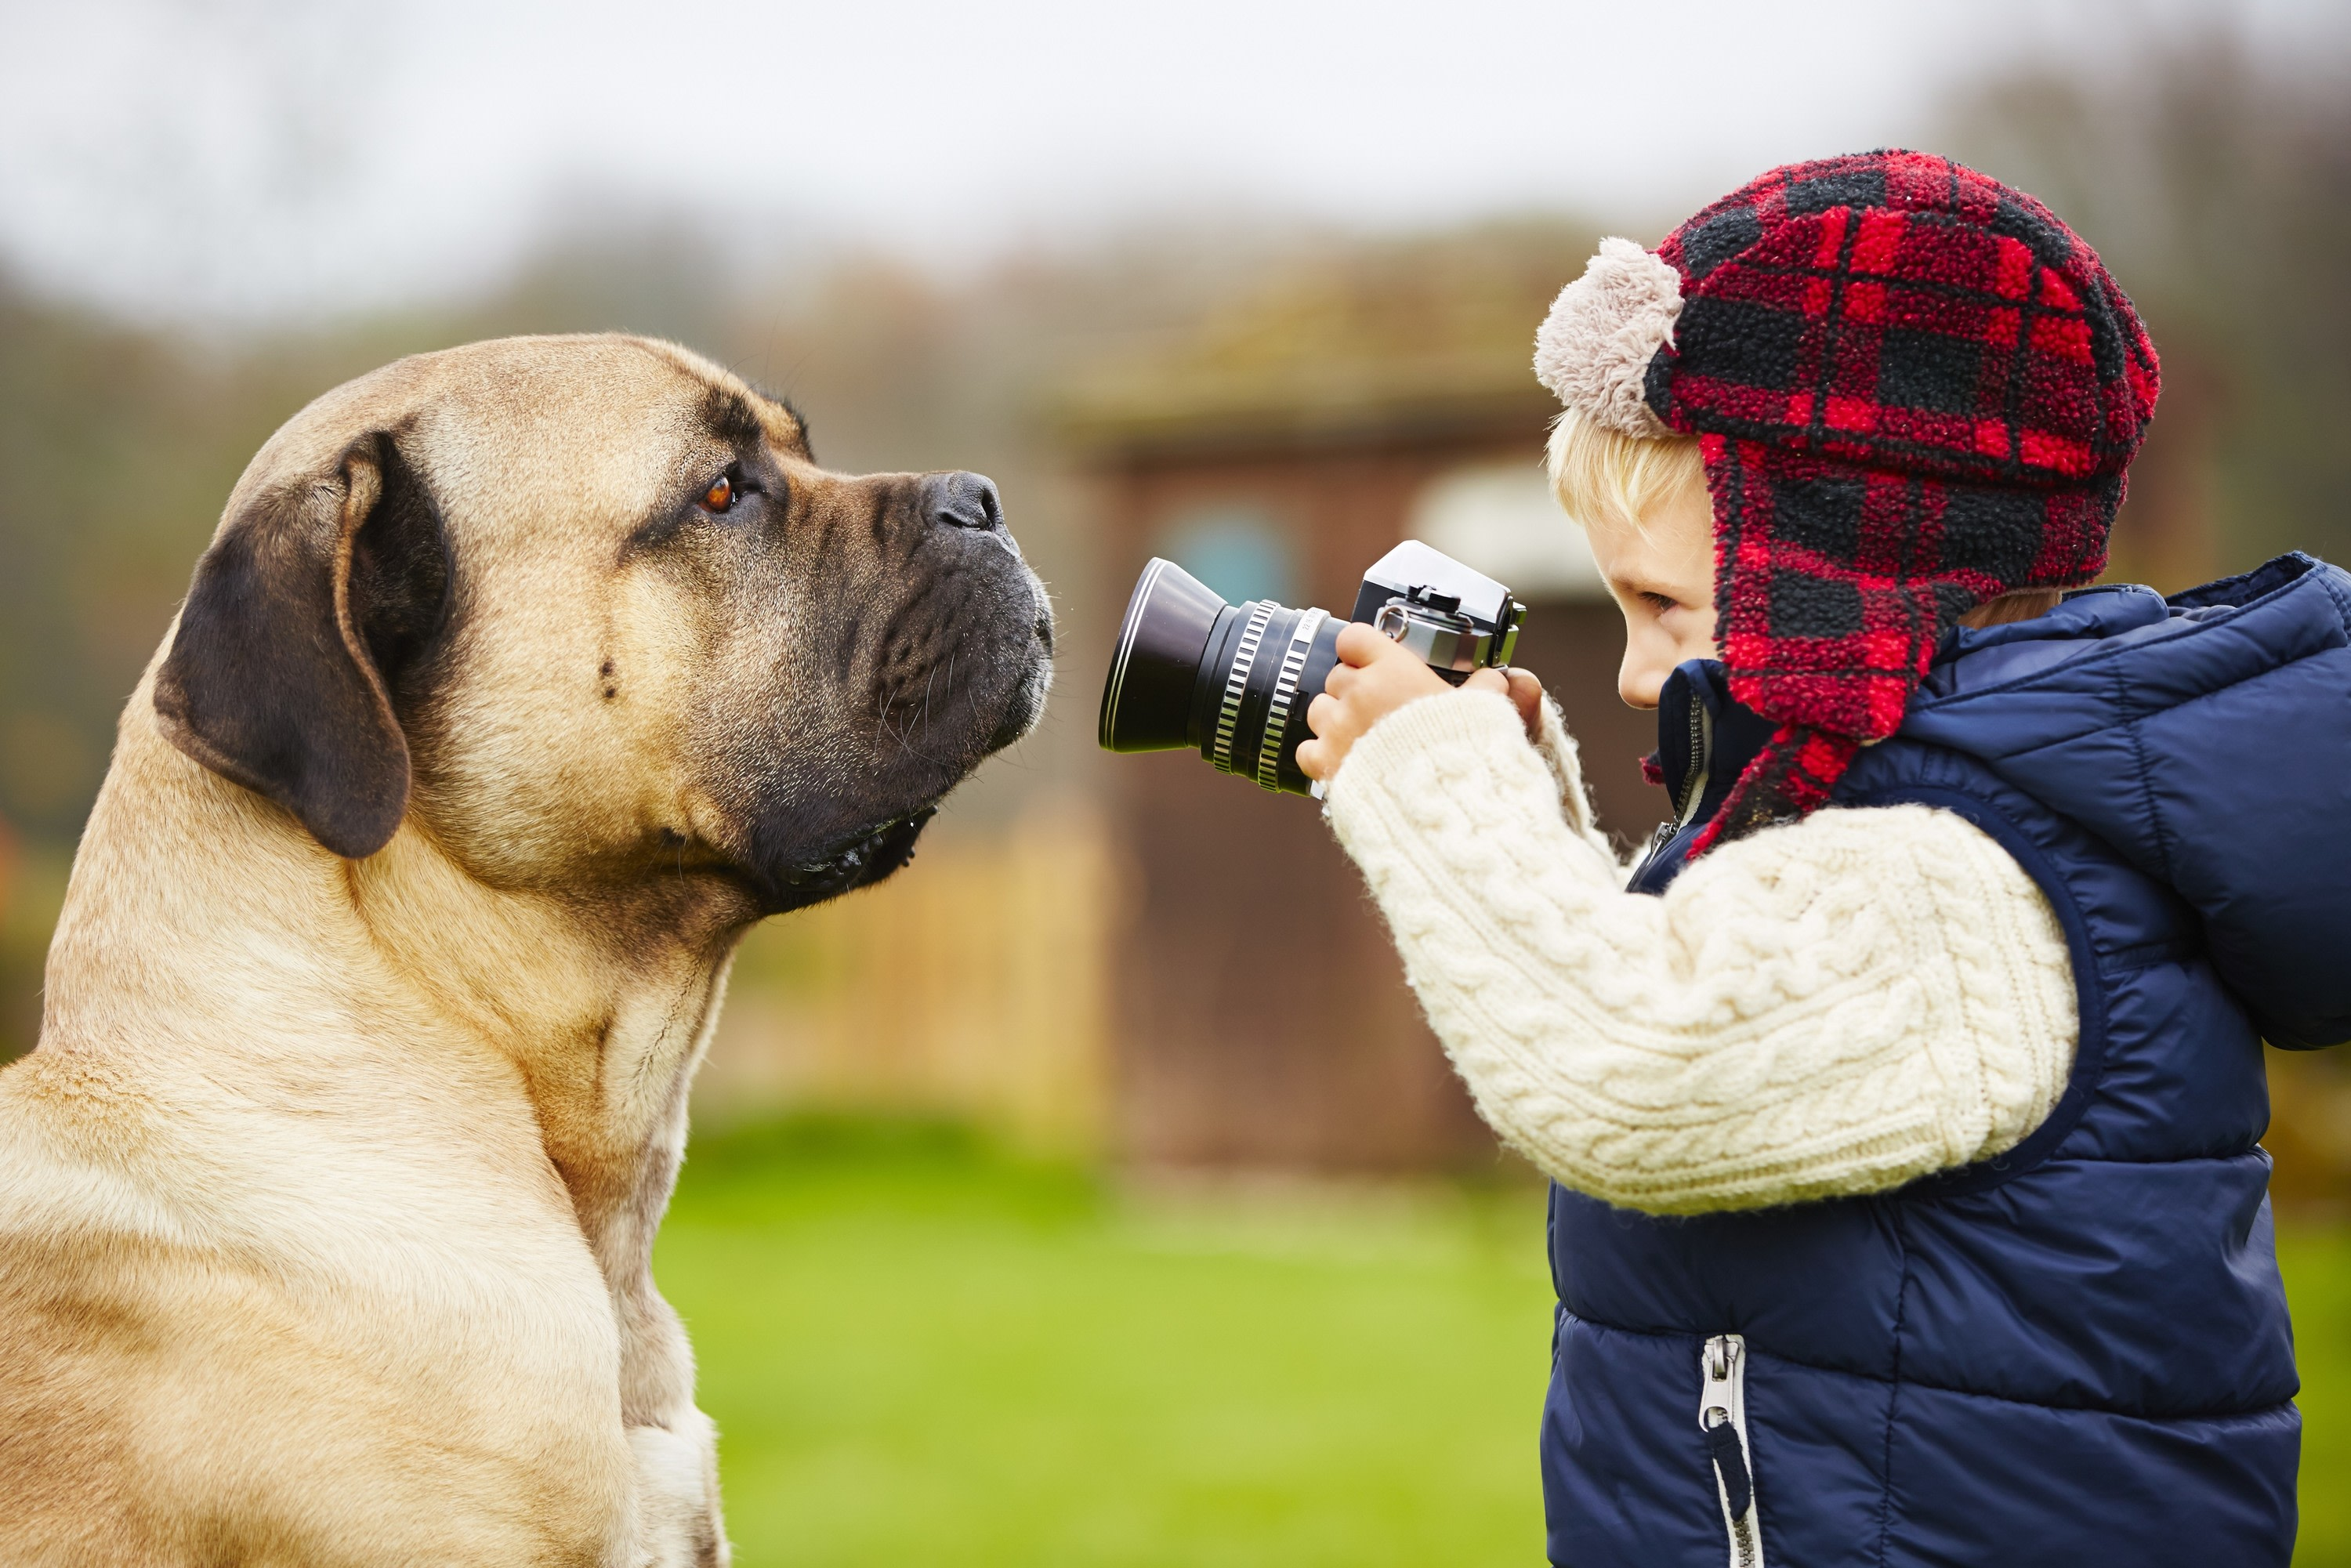 <div class='title'>           Child and Dog image         </div>                 <div class='description'>           Child photographing a pet dog for photo gift         </div>